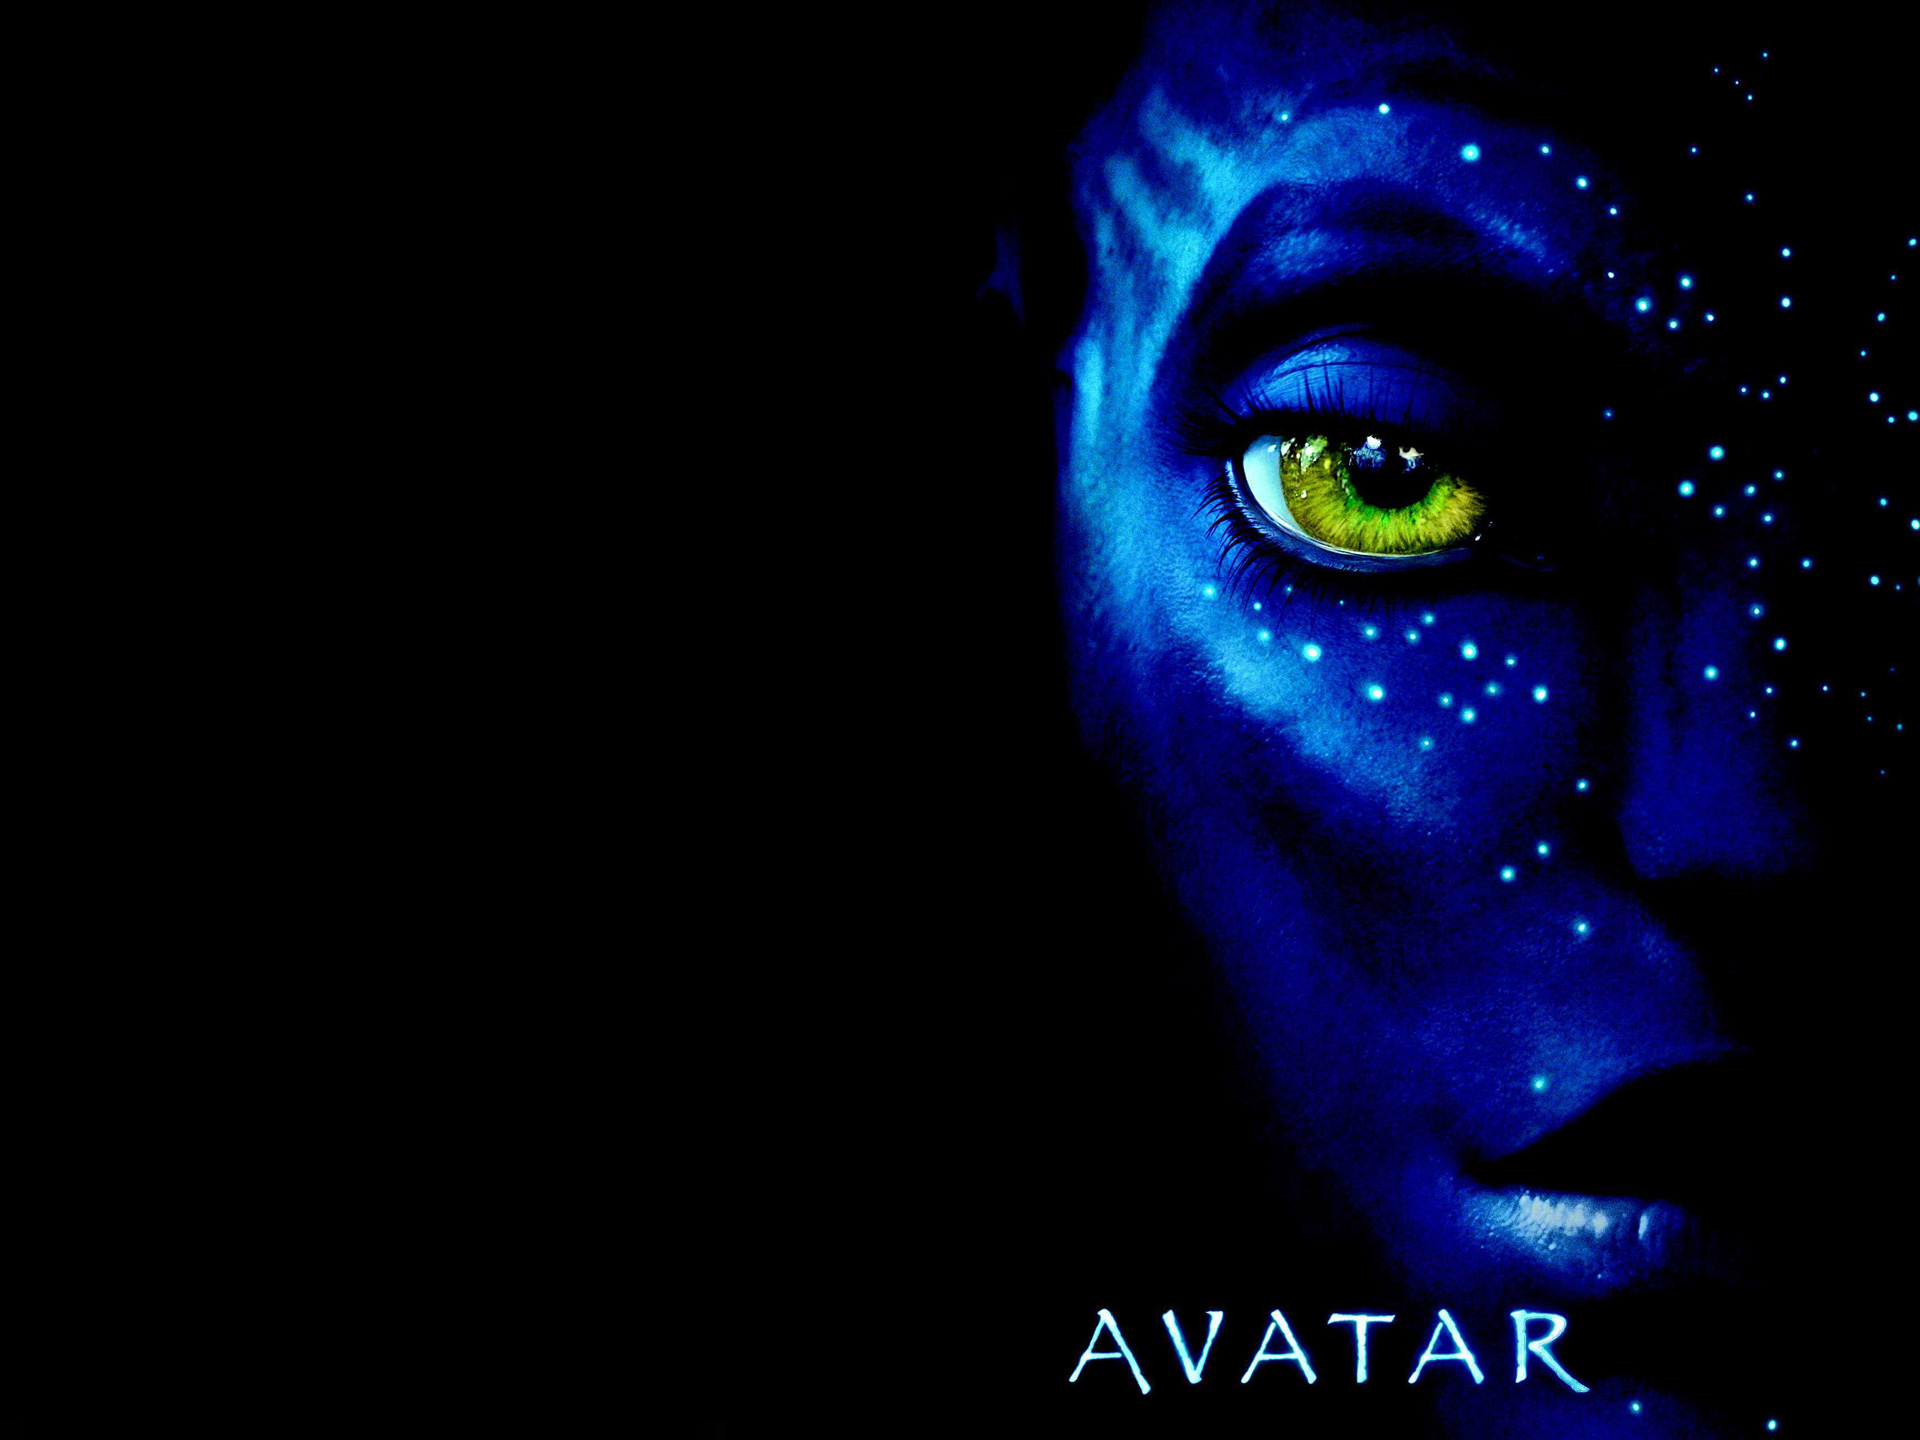 Official Avatar Movie Poster Wallpapers HD Wallpapers 1920x1440